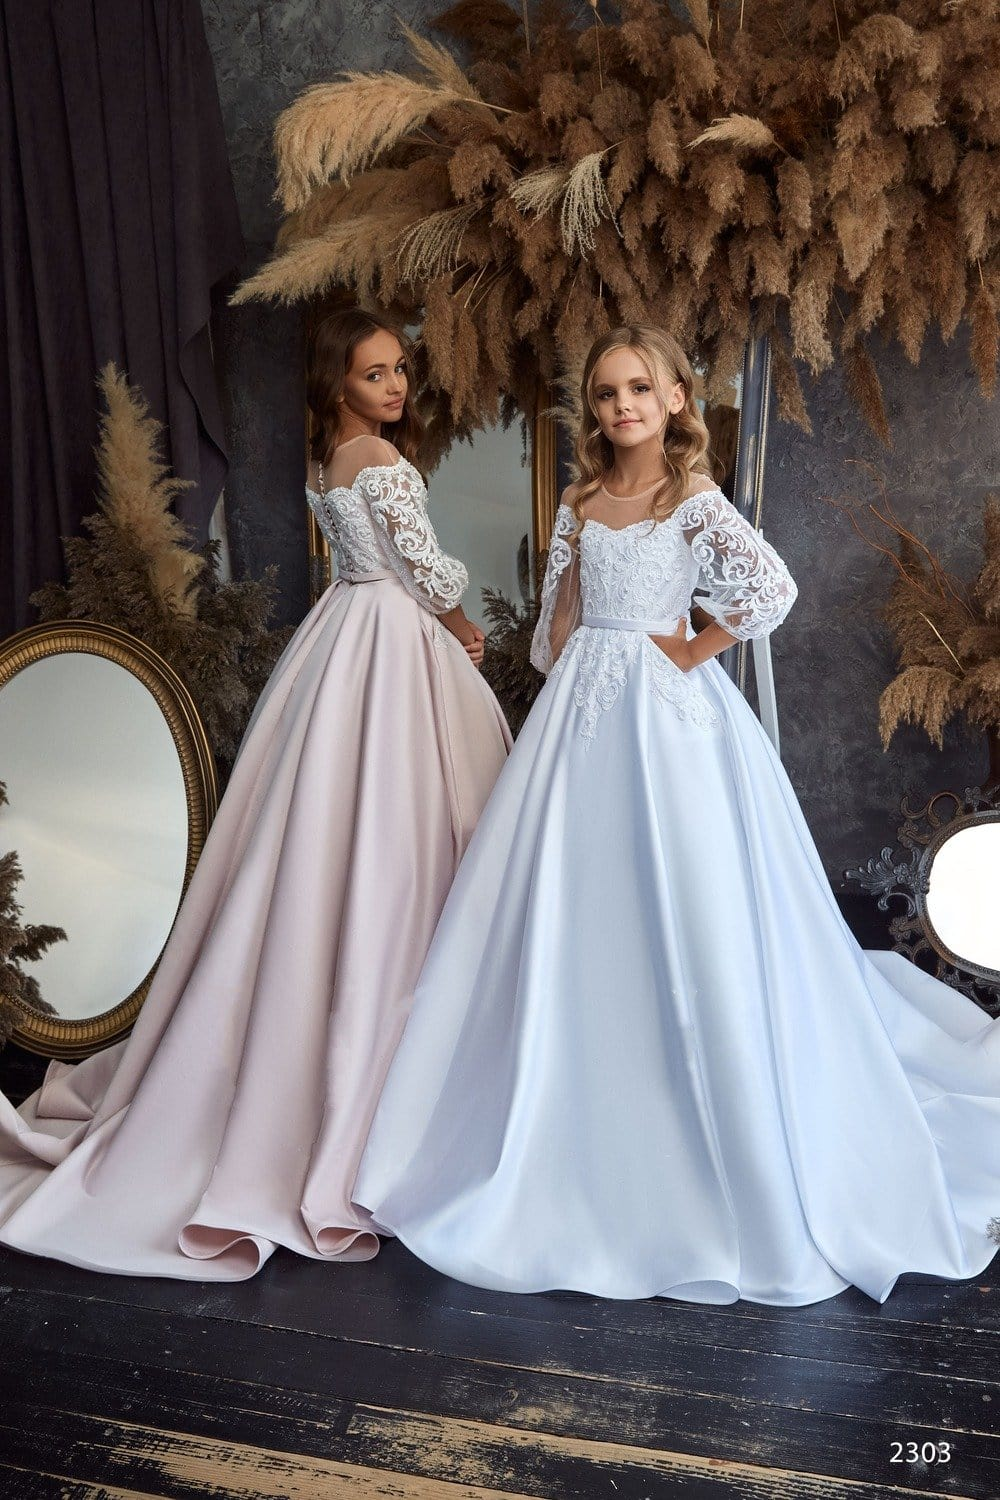 00f8554274ee Ivory, Cappuccino, Pink, Coral, Lavender, Fuchsia, Blue, Aqua, · 2303  Adelia Flare-sleeve Tulle Junior Bridesmaid Gown with Lace Appliques